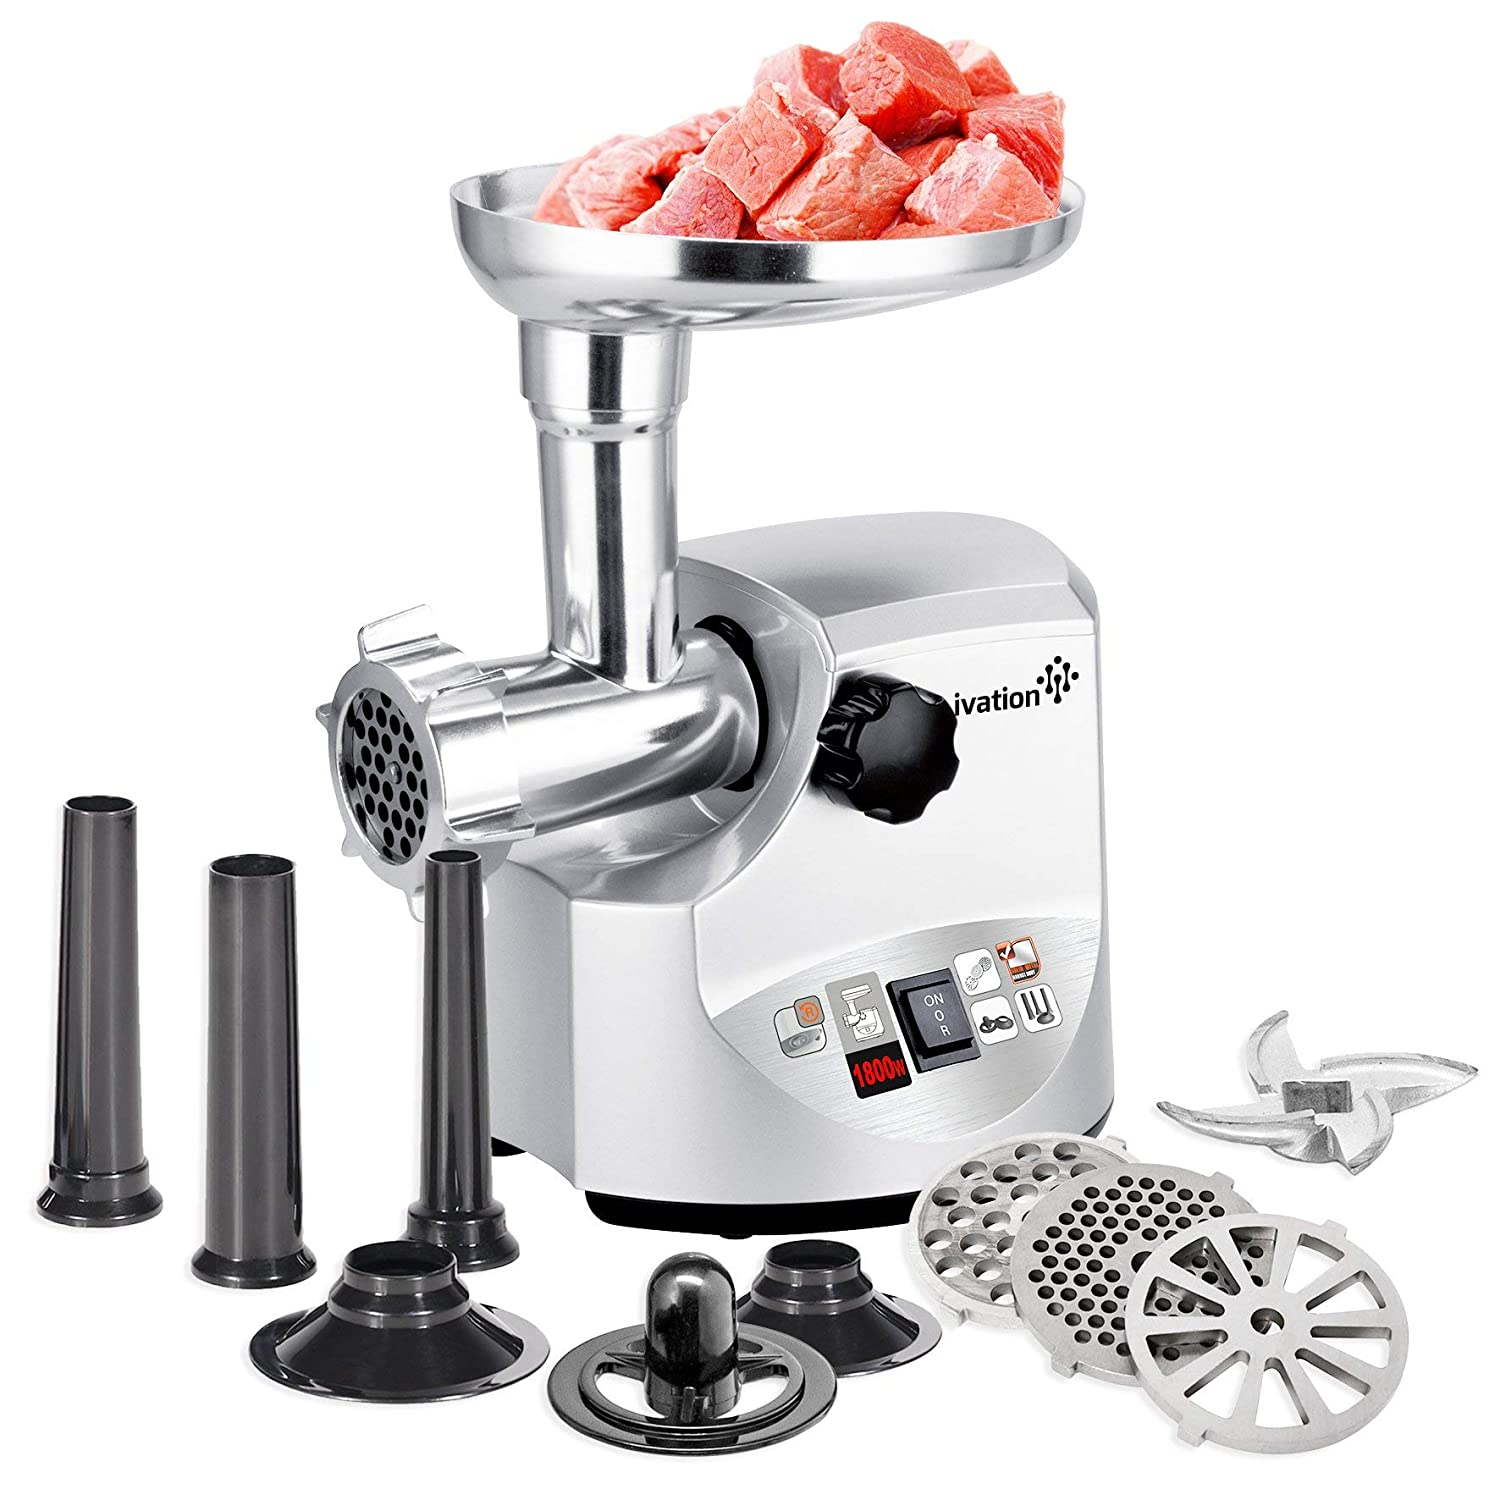 Ivation 1hp Compact Electric Meat Grinder Mincer & Sausage Stuffer, Upgraded Metal Gear System, 5pc Accessory Kit with 3 Stainless Steel Grinding Plates, Sausage Stuffing Tubes & Kibbe Attachments IV-EMG061W